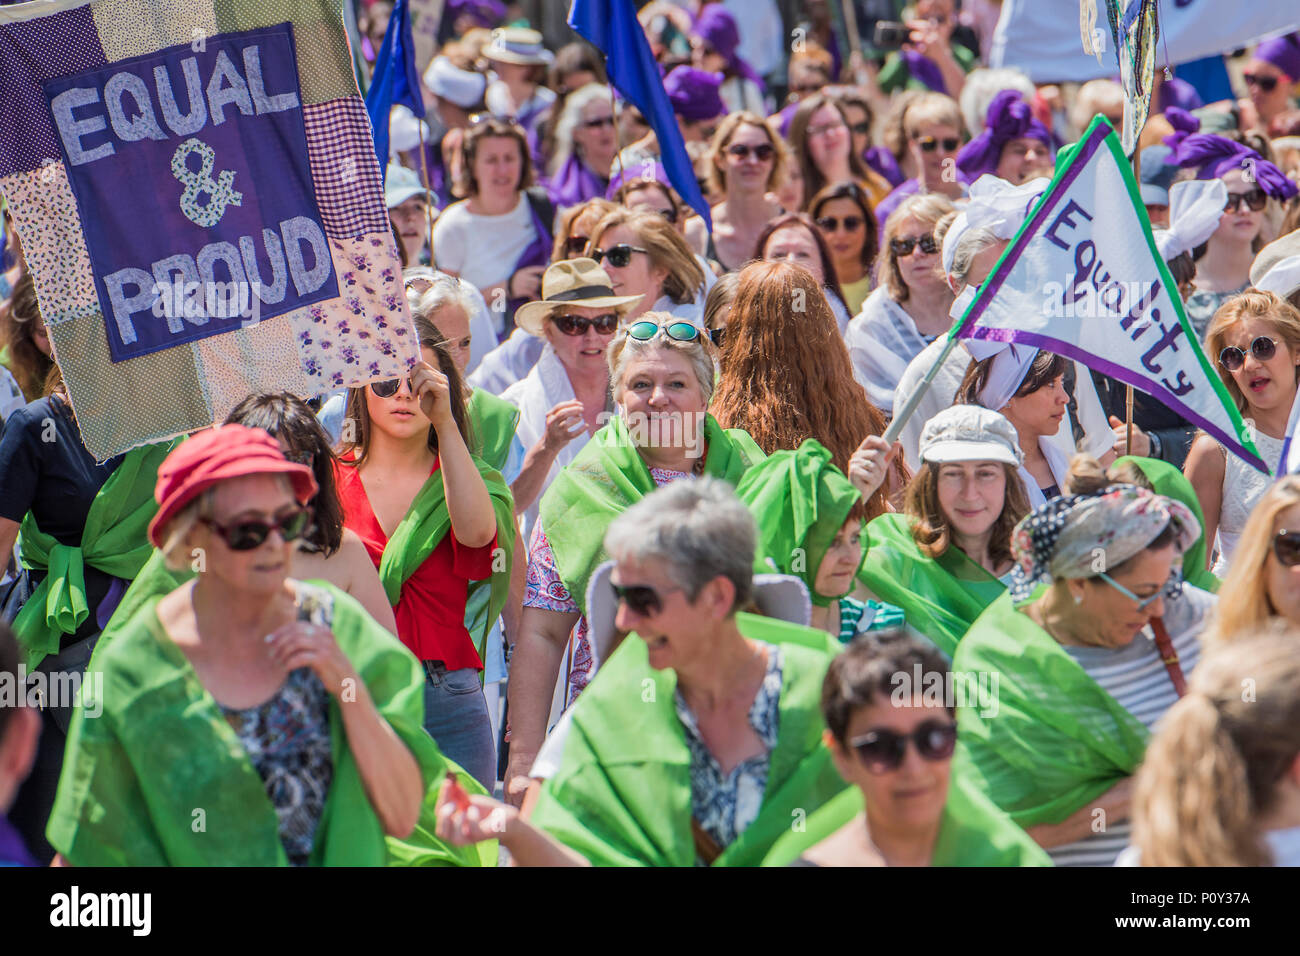 London, UK. 10th June 2018. PROCESSIONS by 14-18 NOW and Artichoke - On 6 February 1918, the Representation of the People Act gave the first British women the right to vote. Artichoke, the UK's largest producer of art in the public realm, invited women and girls to mark this moment by taking part in a major mass-participation artwork. They walk together in public processions, forming a living portrait of women in the 21st century and a visual expression of equality. celebrating the fight for suffrage. Credit: Guy Bell/Alamy Live News - Stock Image